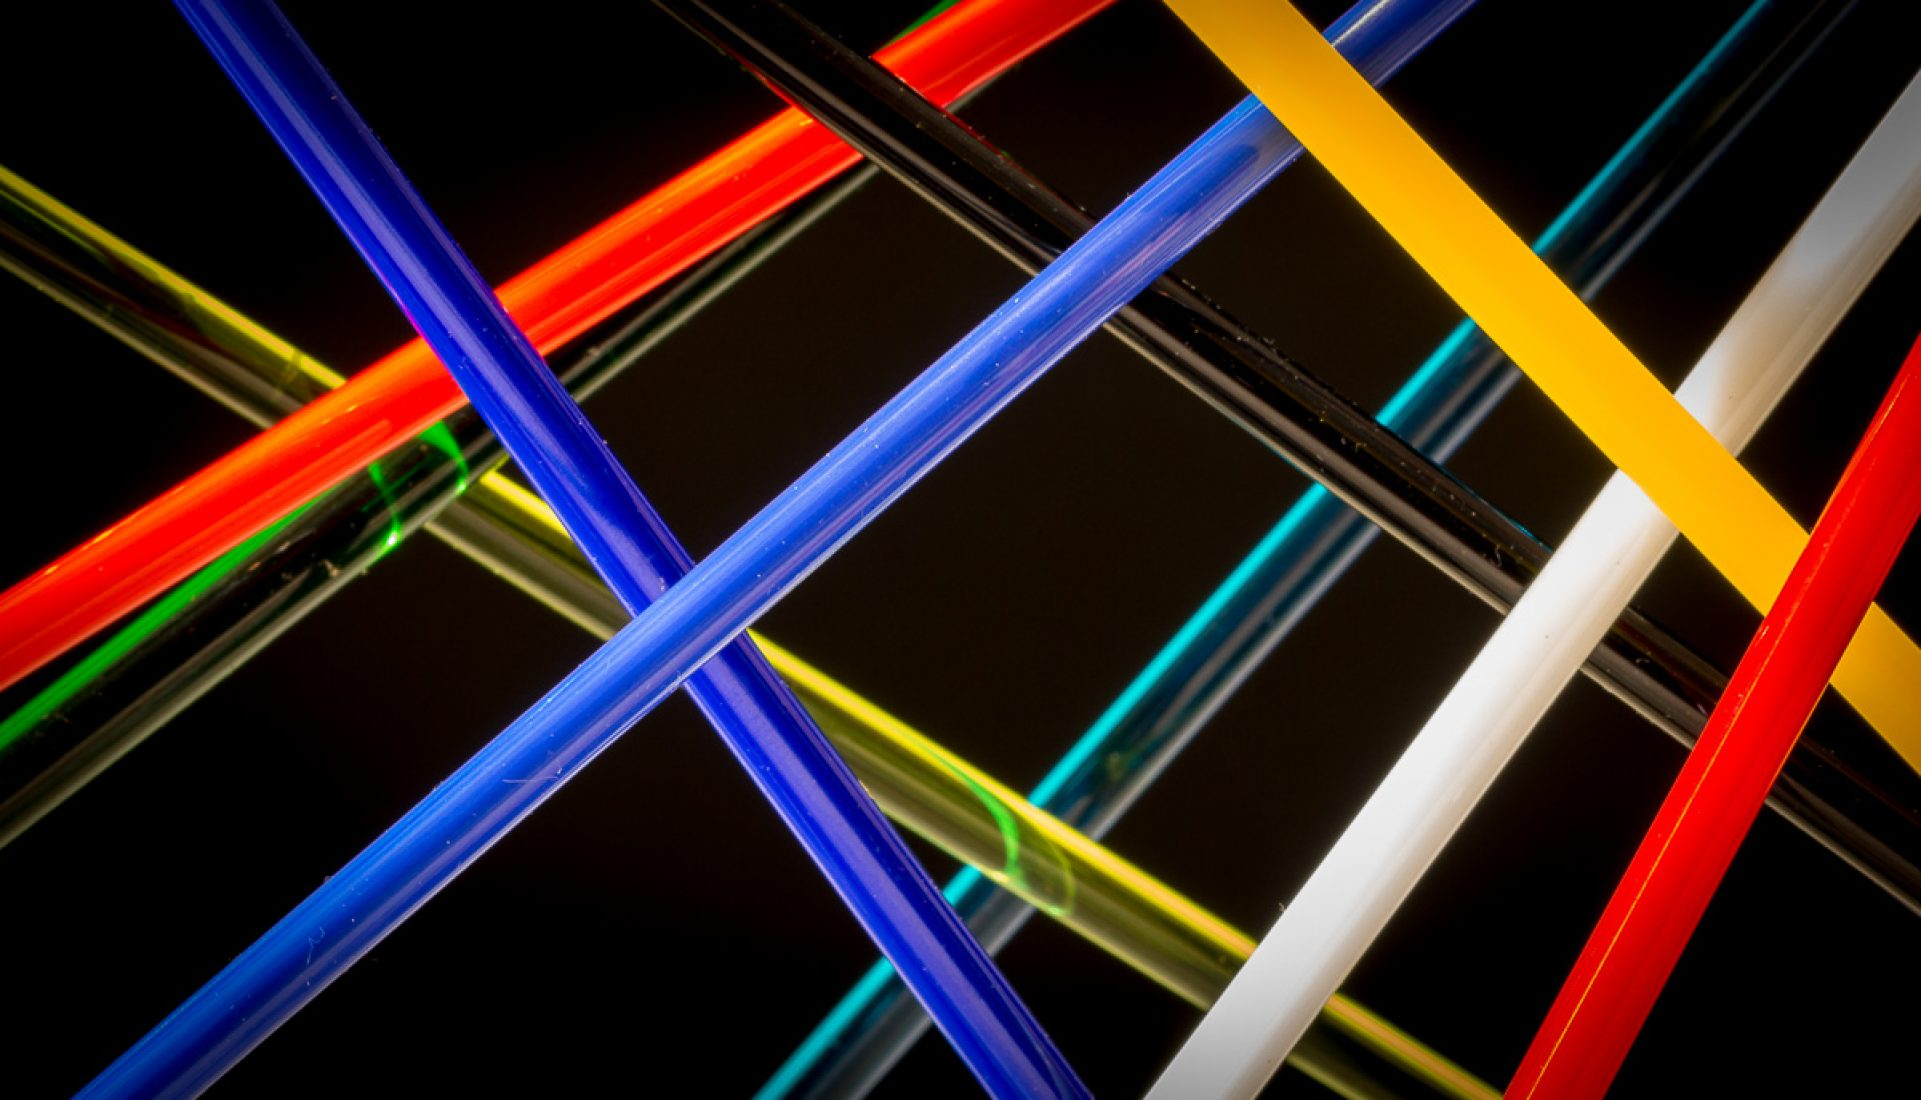 Angular – Abstract with Glass Rods